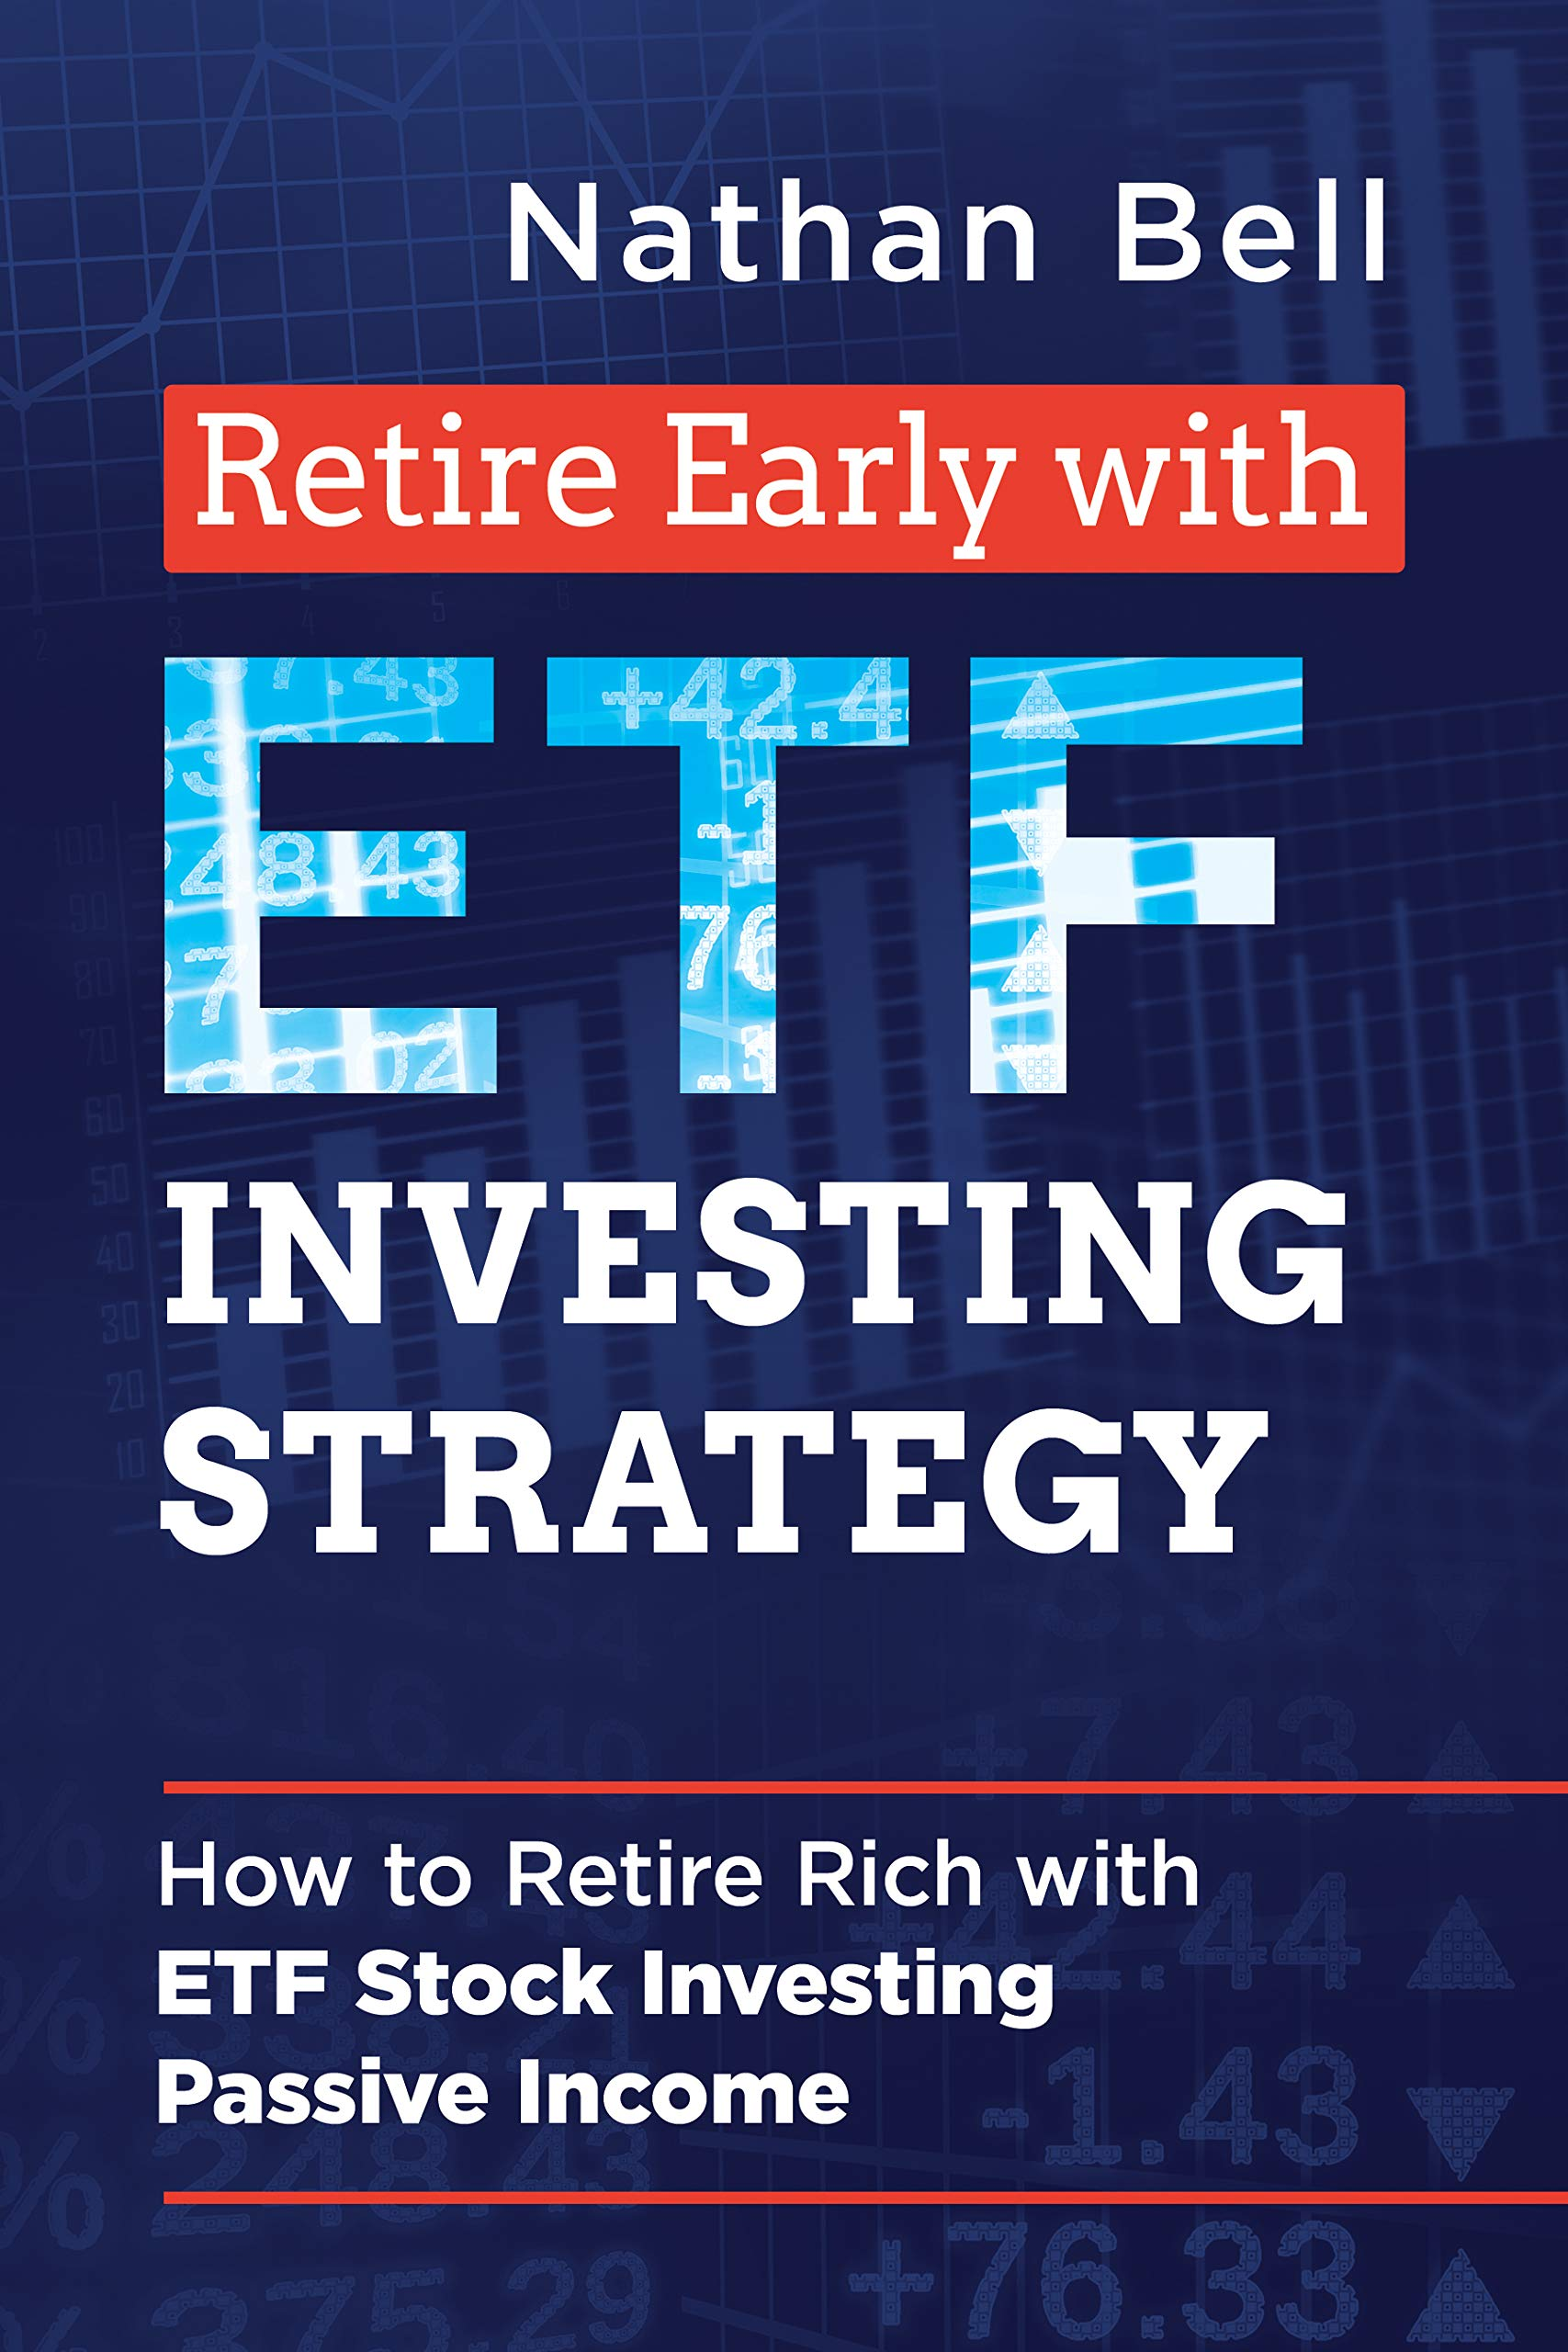 etf investment strategy online